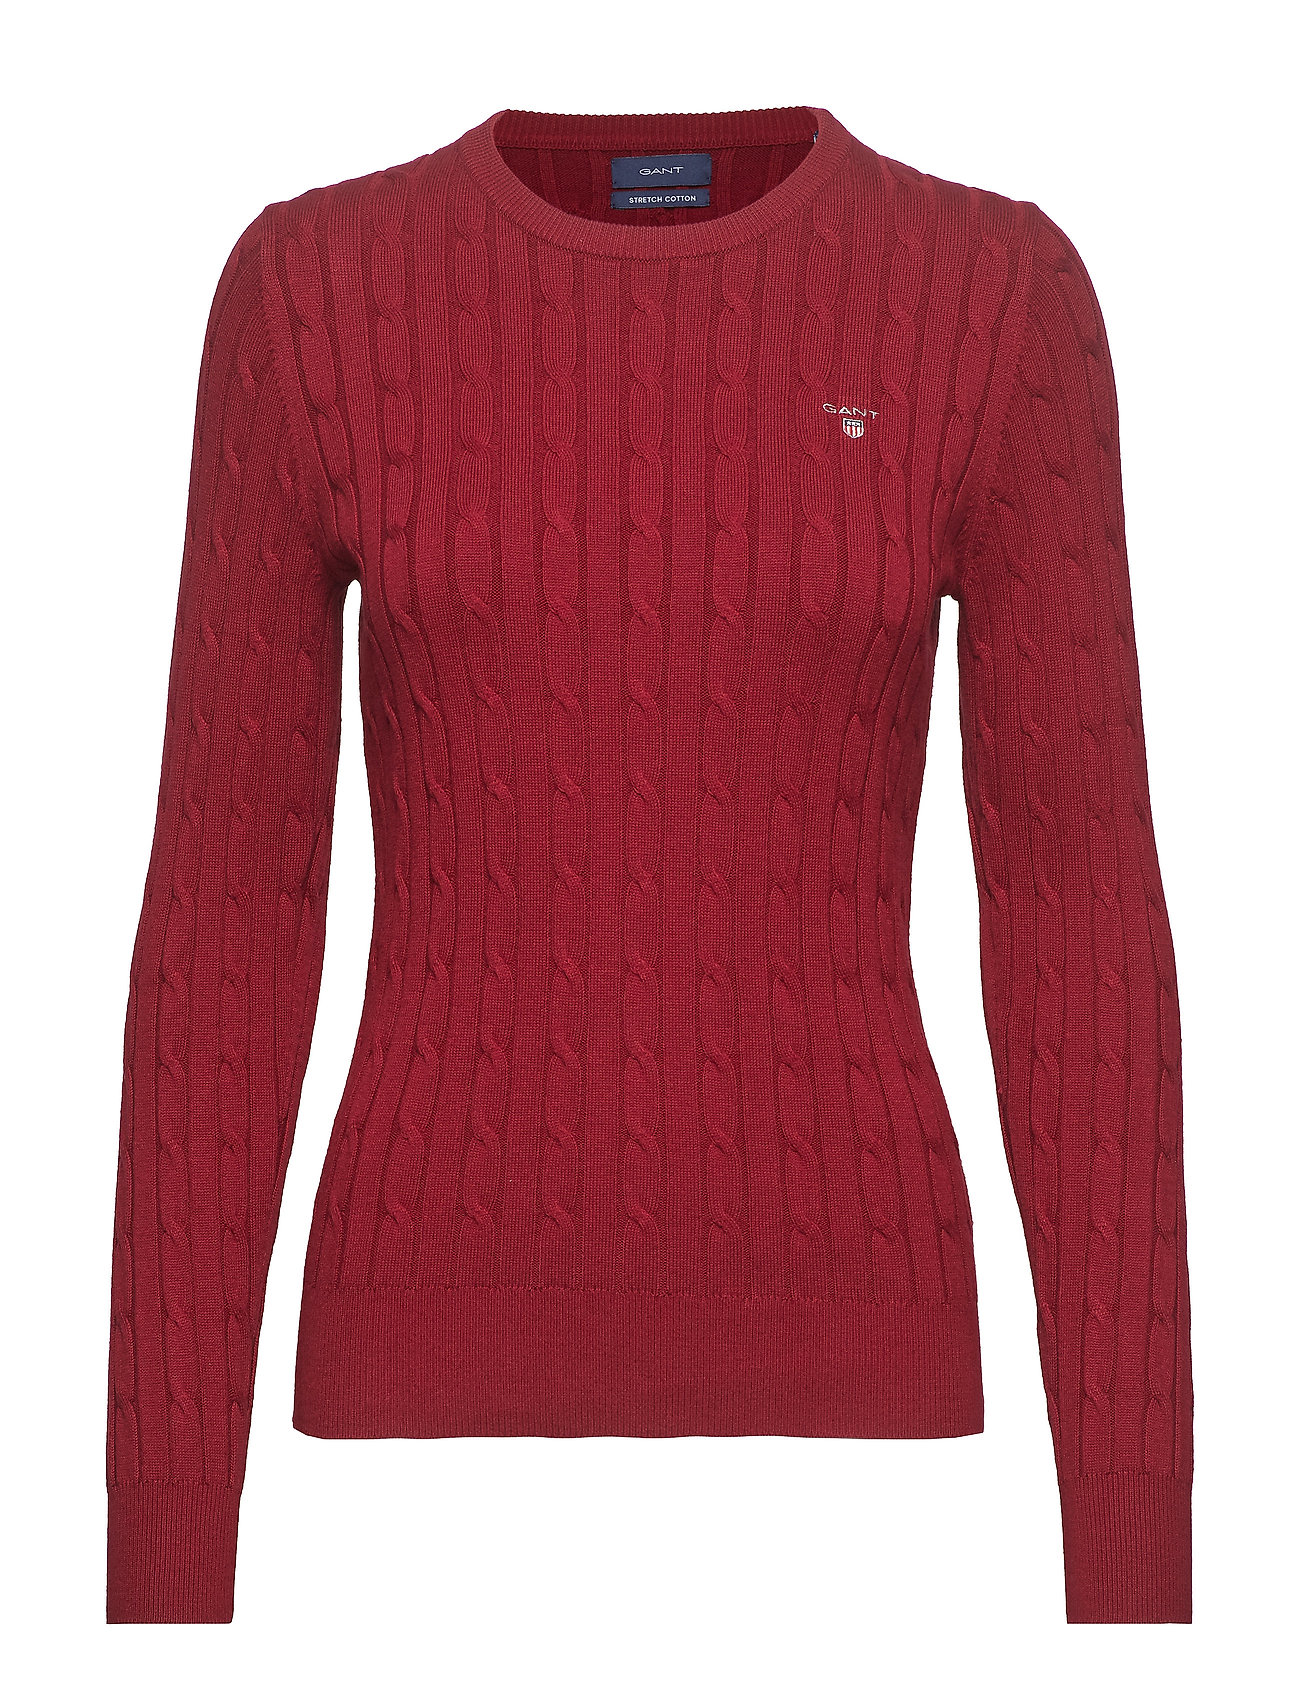 Gant STRETCH COTTON CABLE CREW - MAHOGNY RED